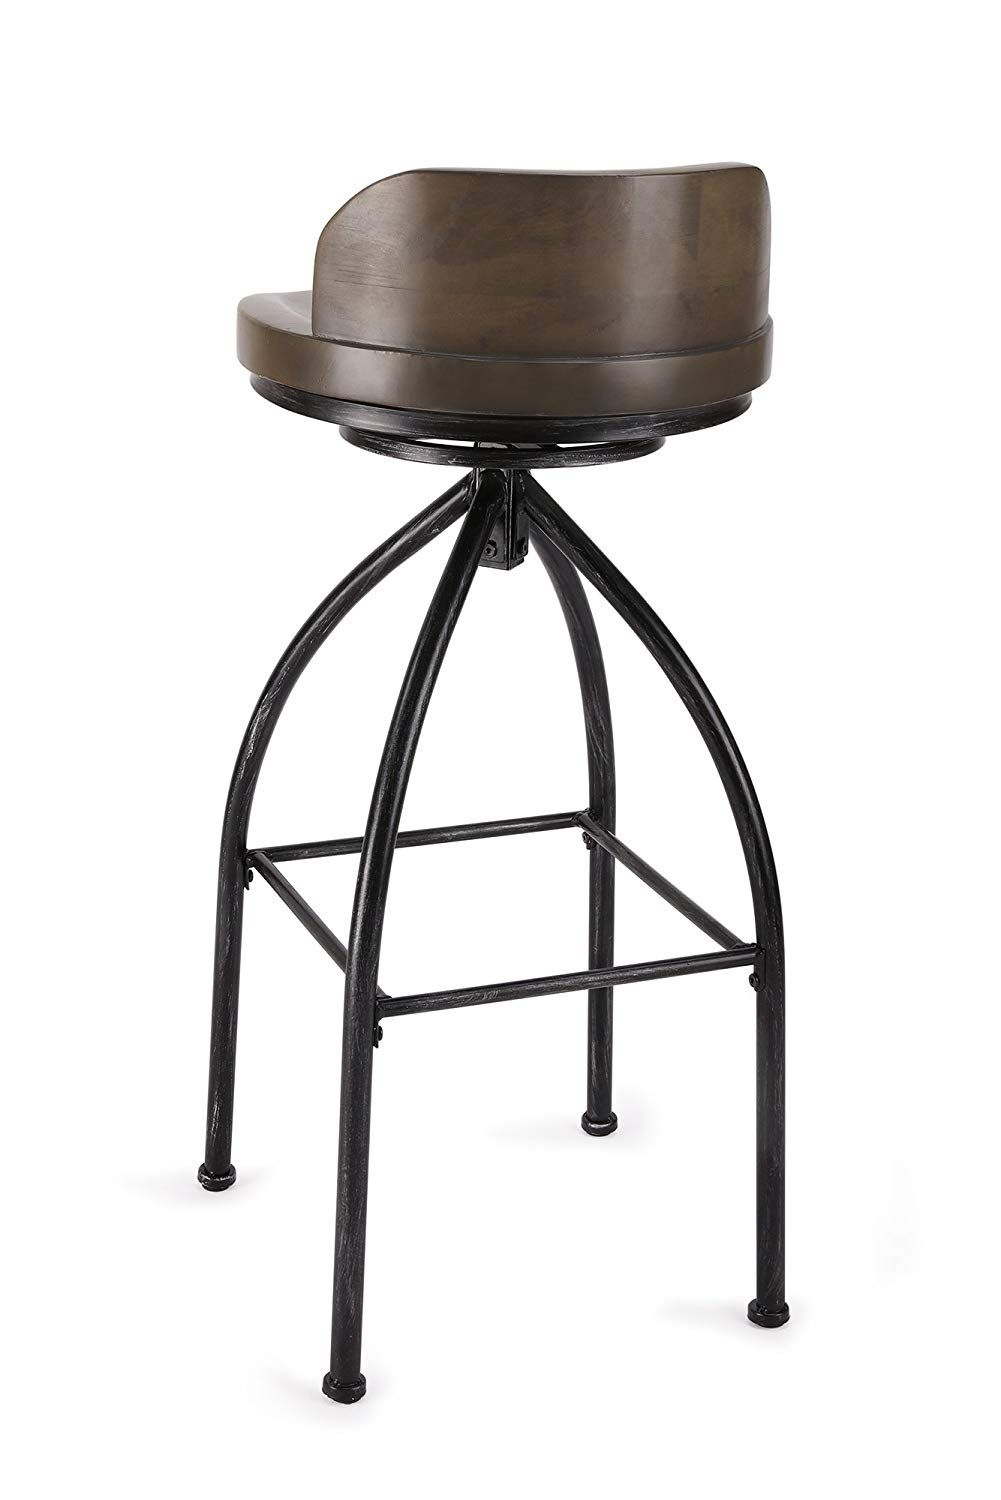 Fivegiven Rustic Industrial Bar Stools 30 Inch Bar Stool With Back